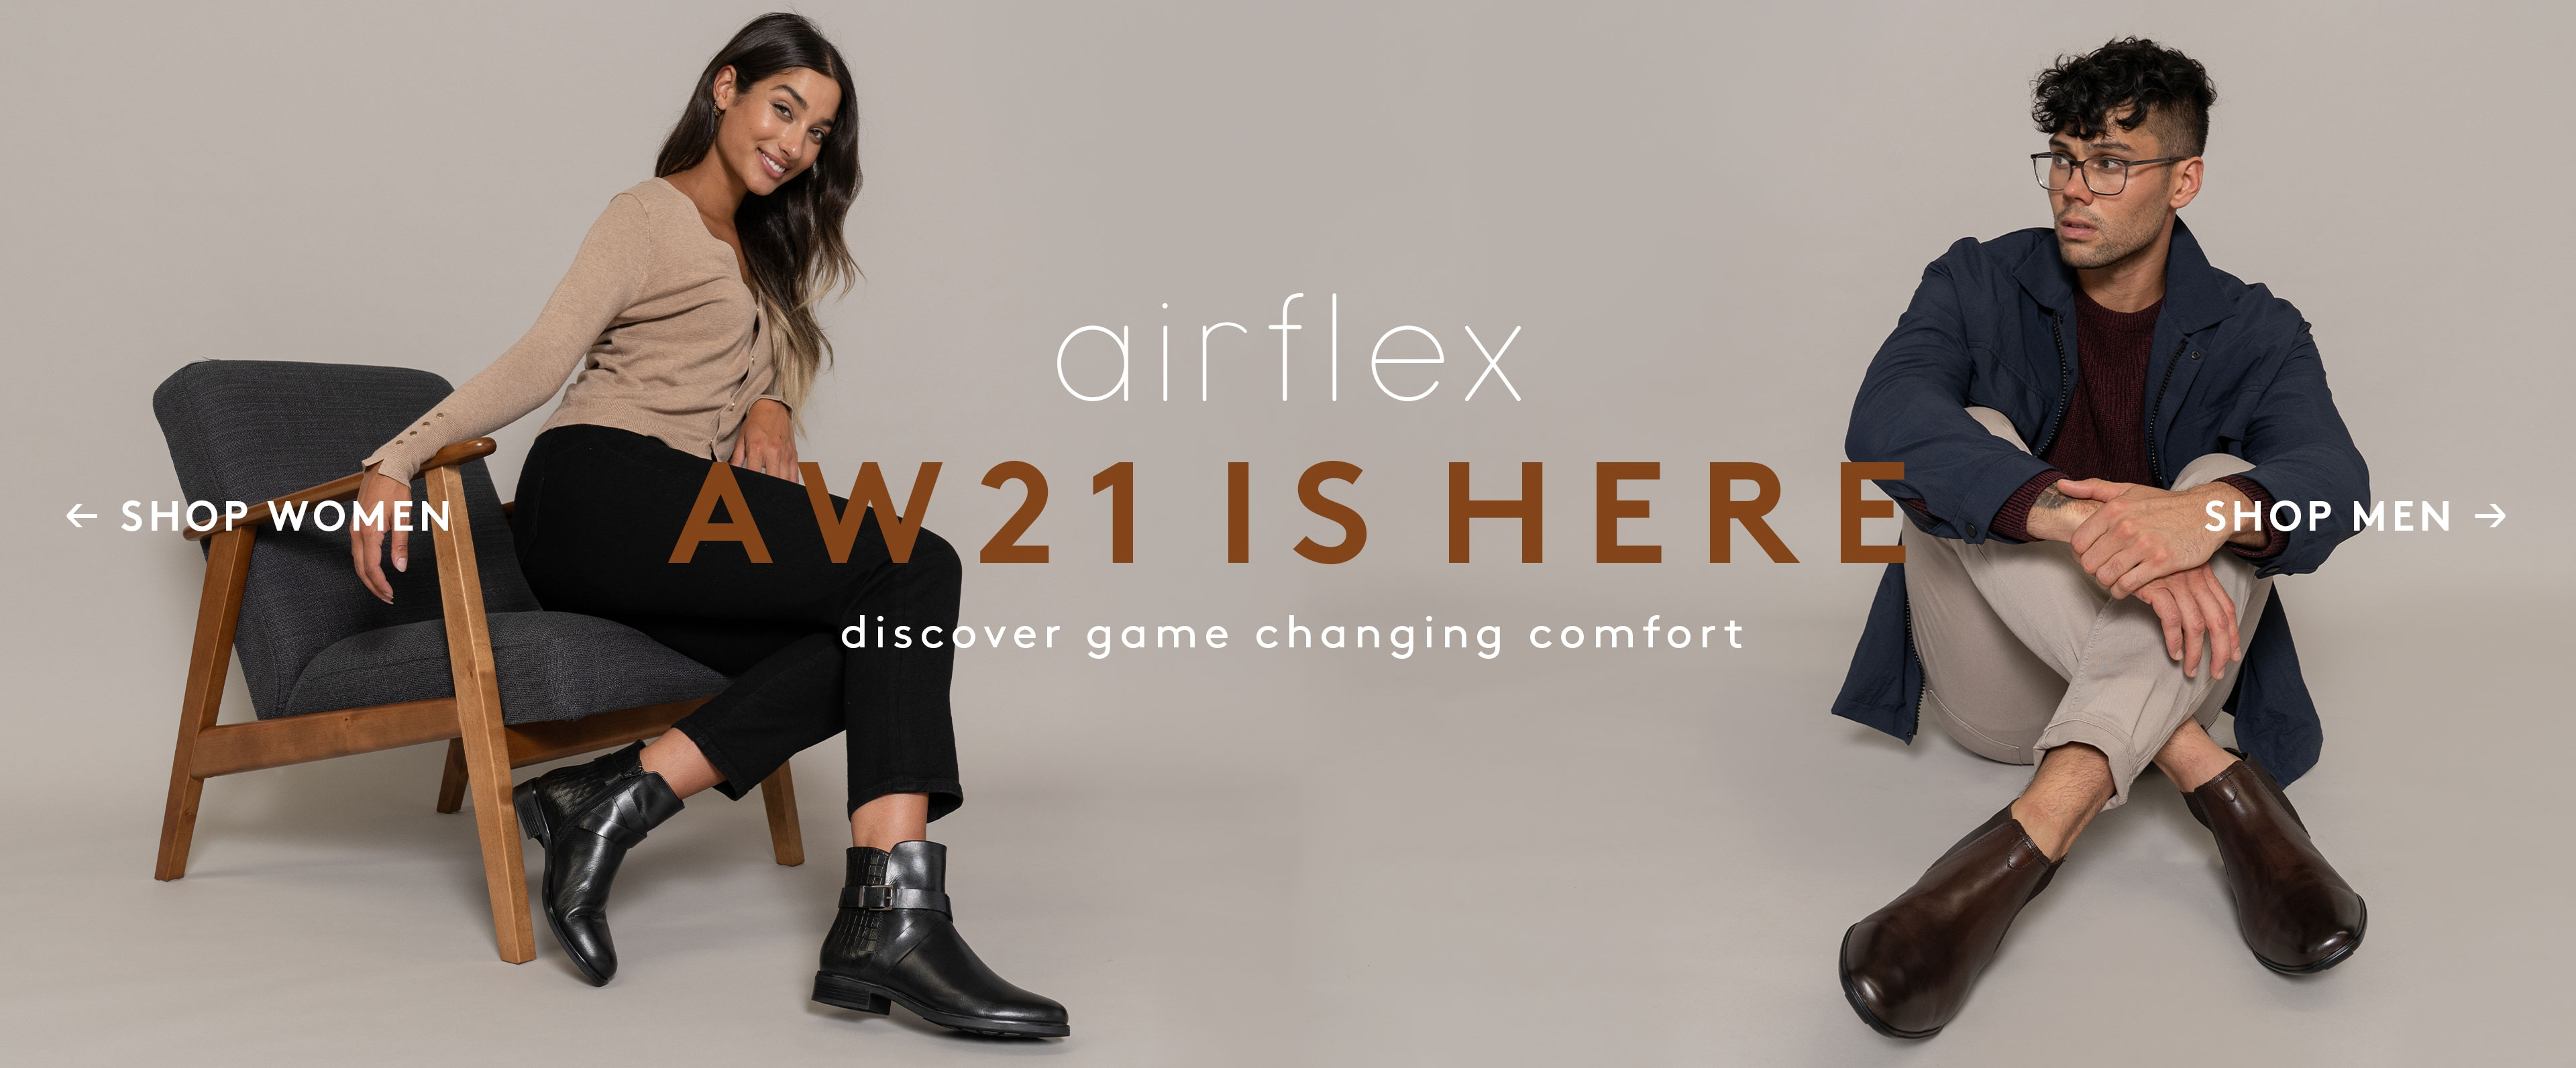 AIRFLEX | AW21 is here | Shop Now